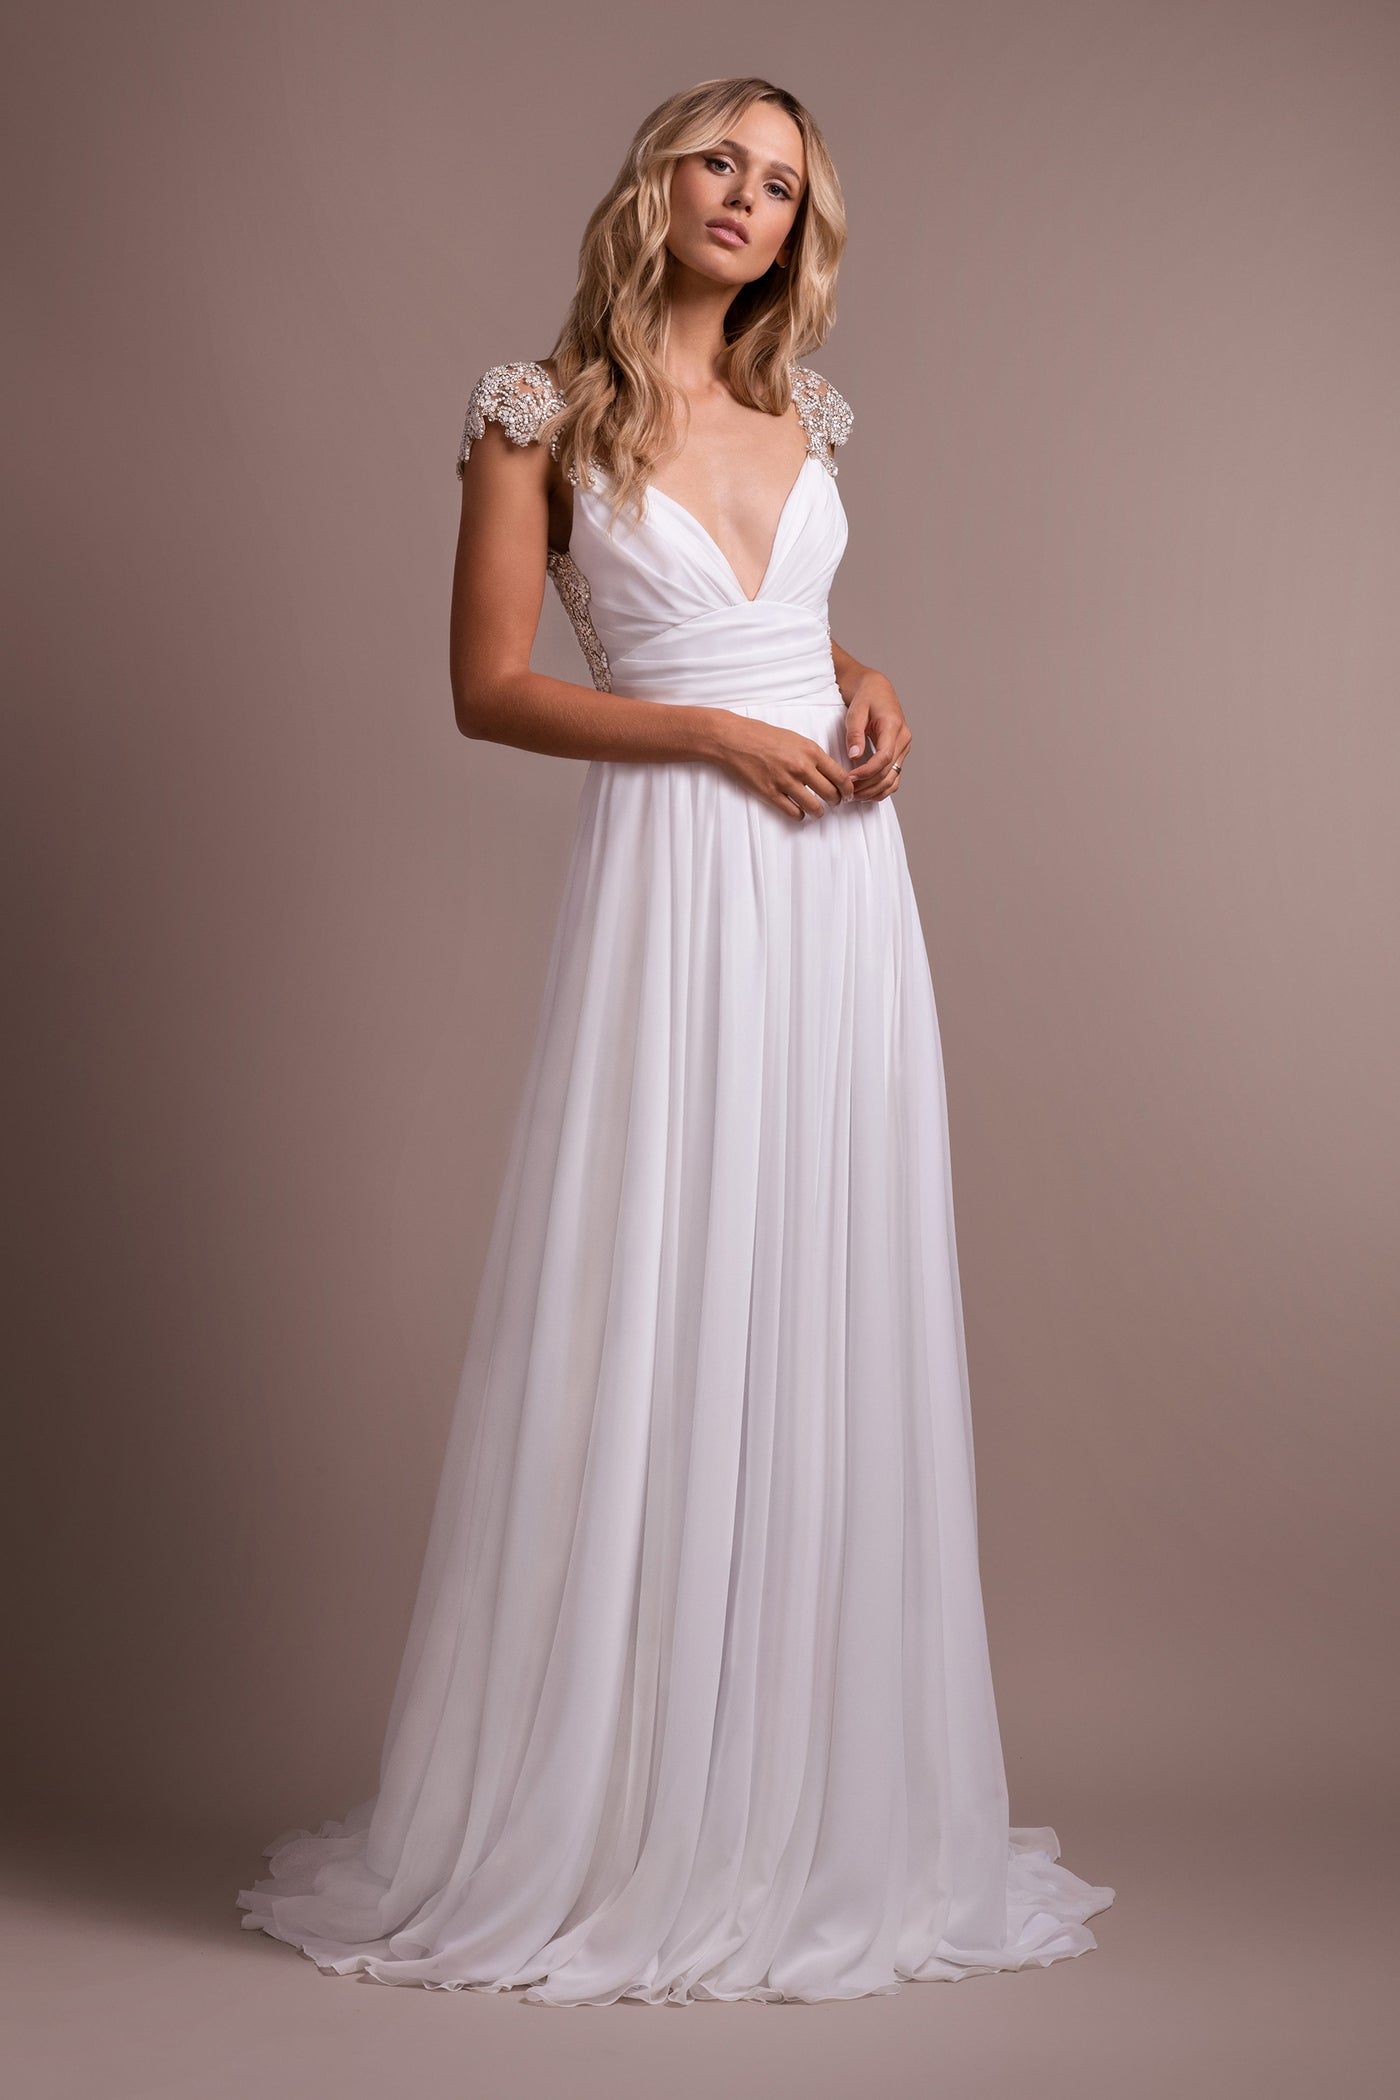 Kemper - Coming Soon, Gown, Hayley Paige - Eternal Bridal